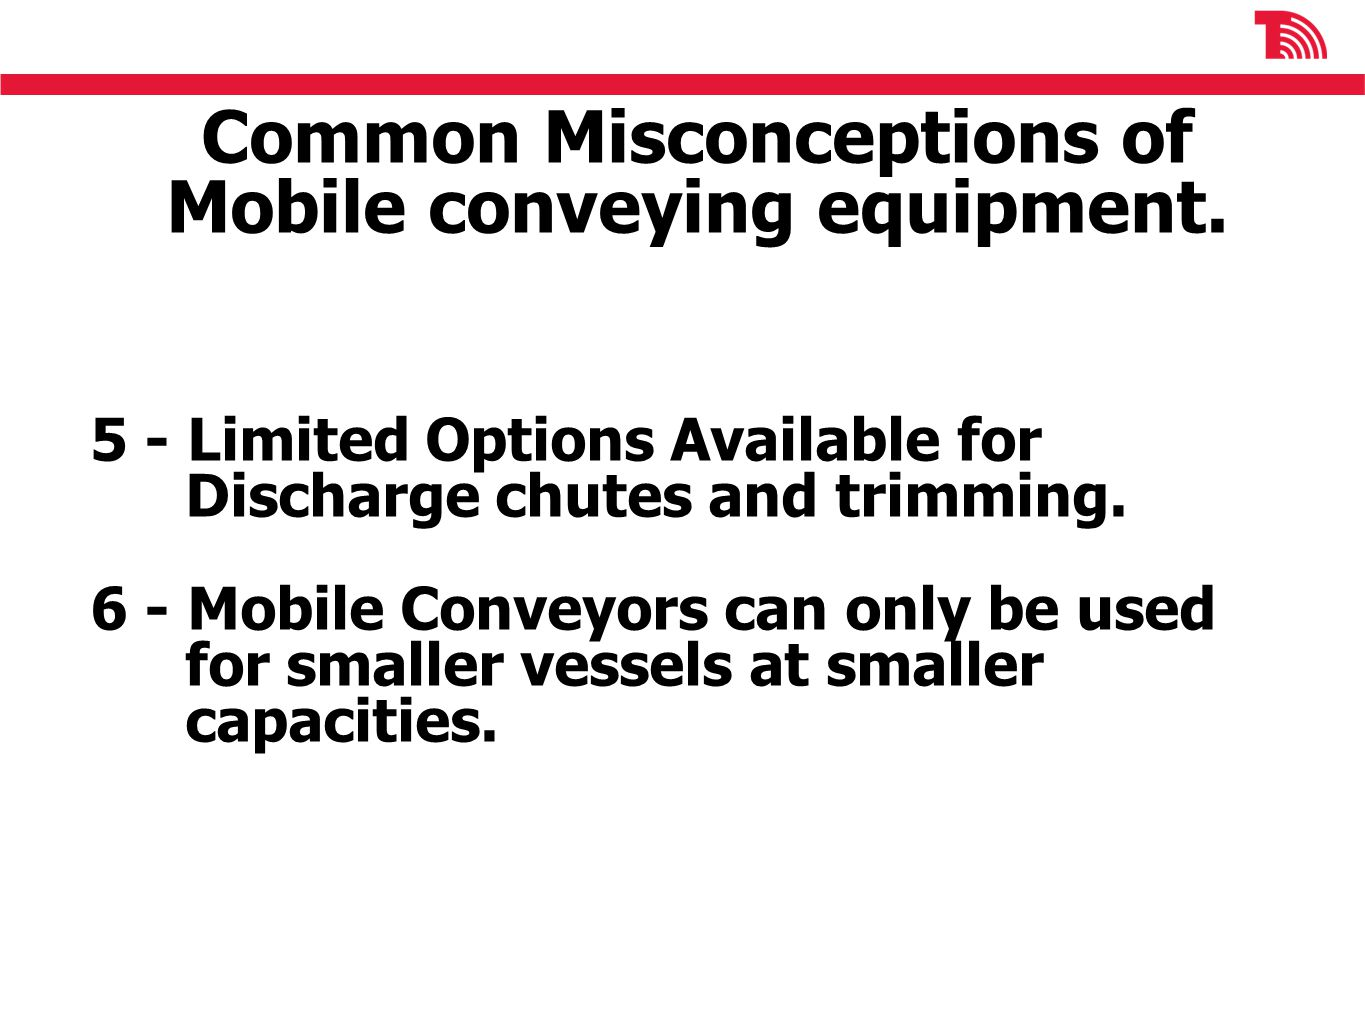 Common Misconceptions of Mobile conveying equipment.